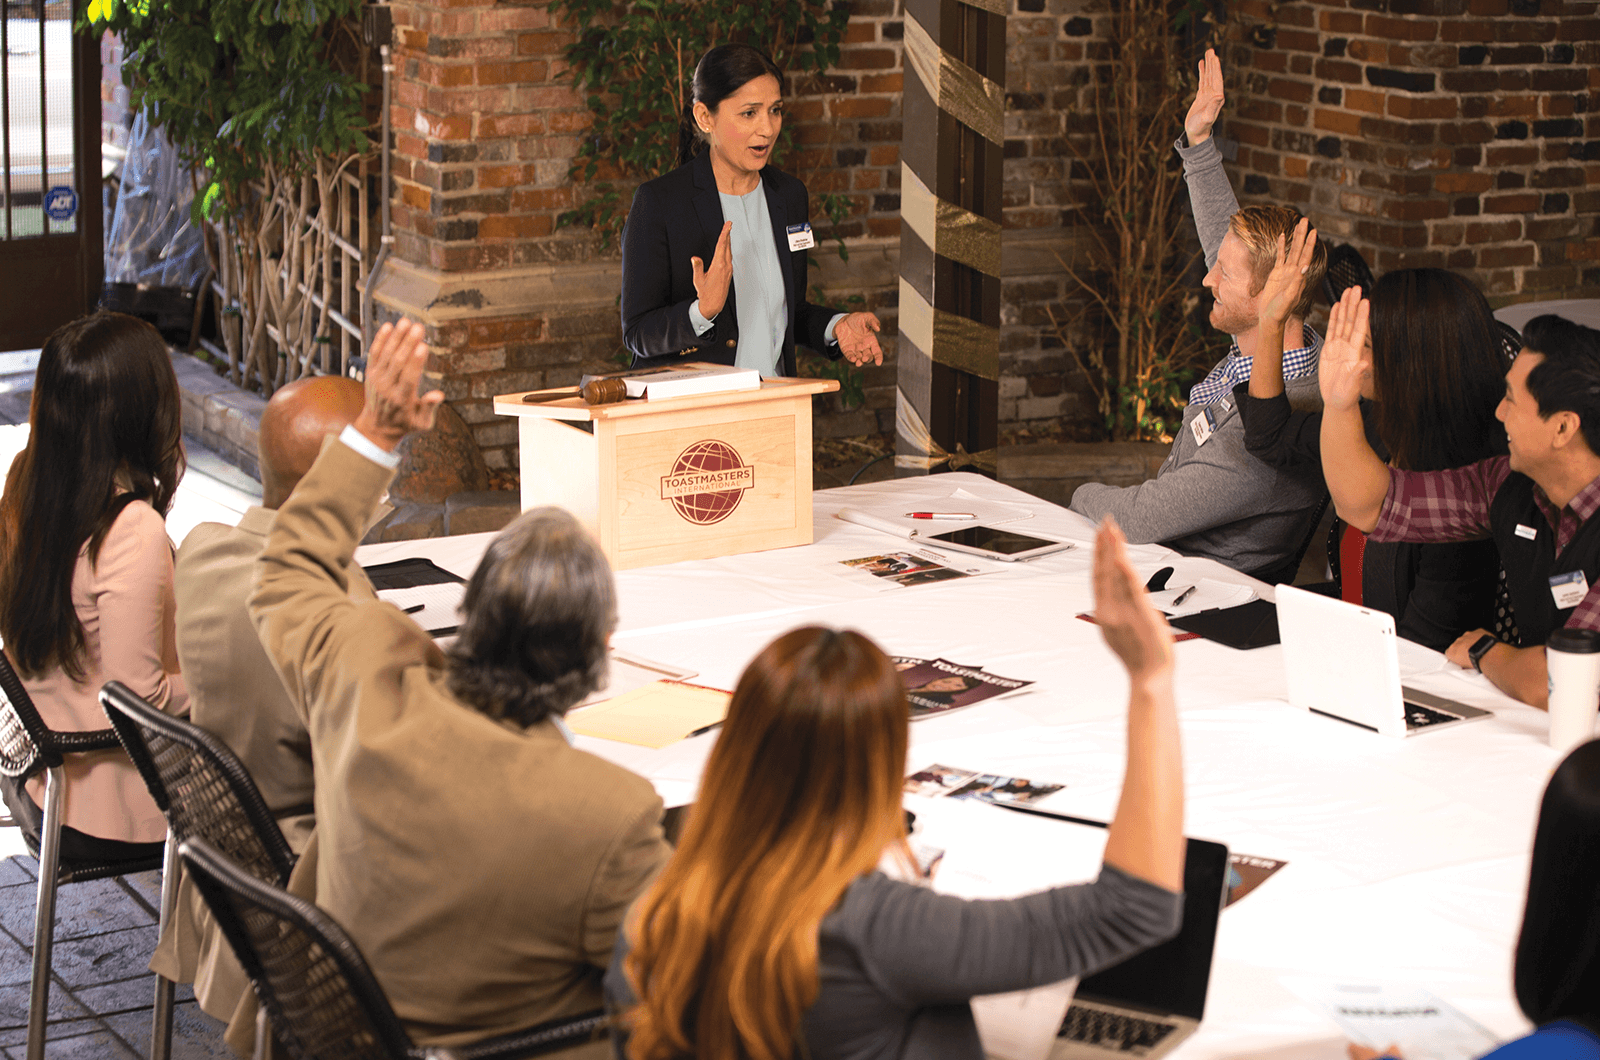 Female standing at Toastmasters lectern while members raise their hands